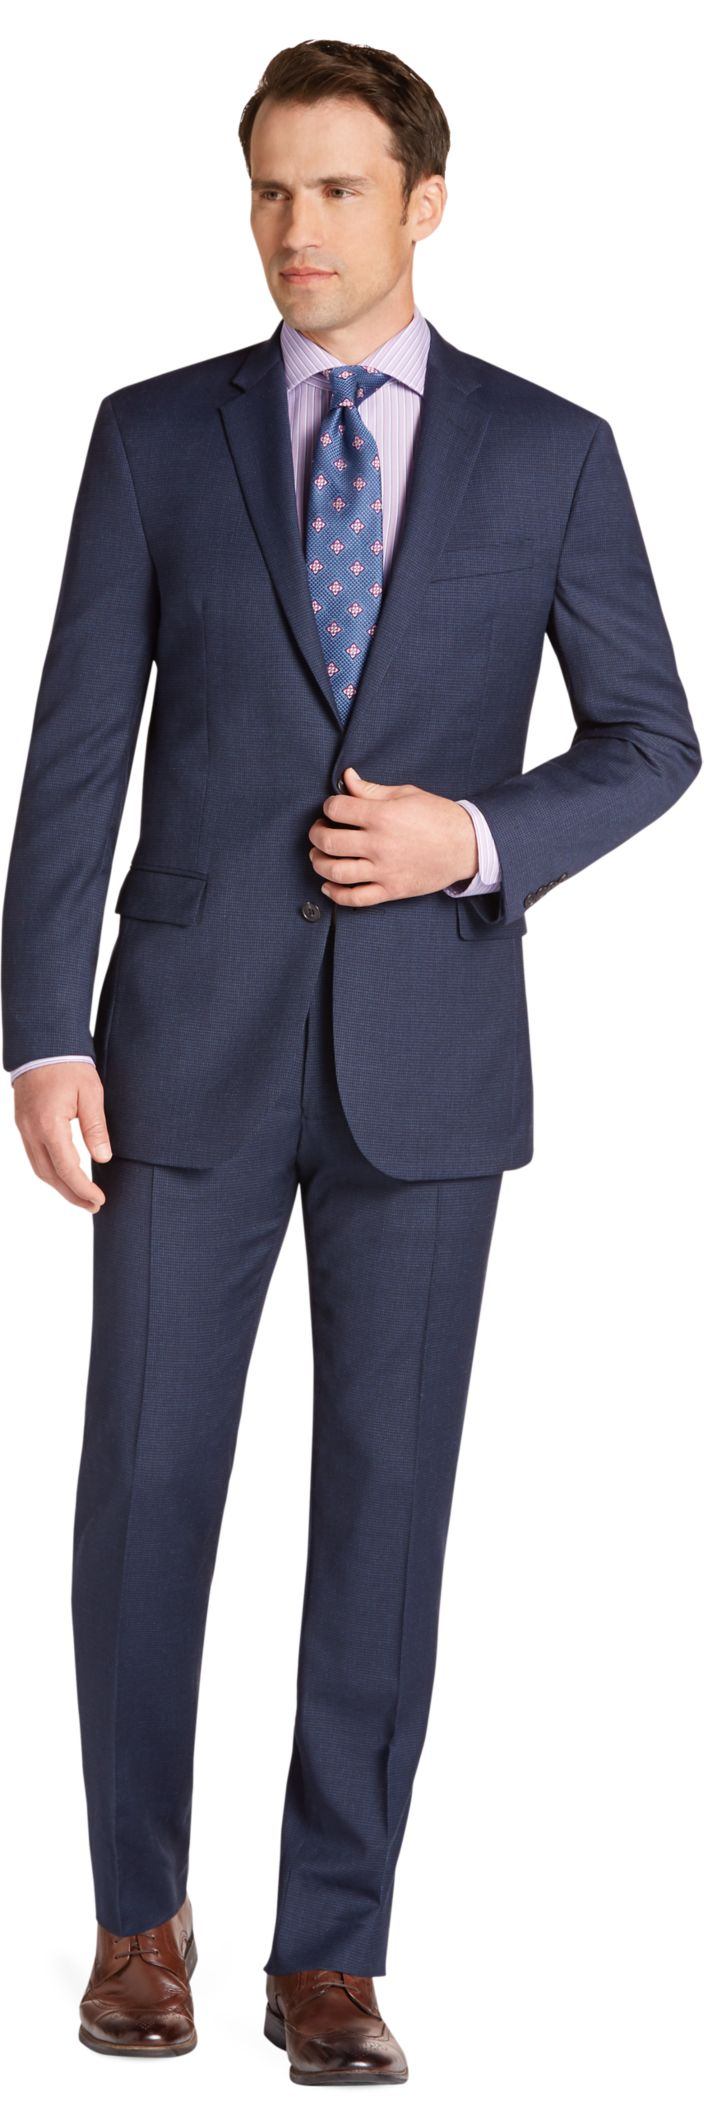 slim fit suit mouse over to zoom cnmiovl